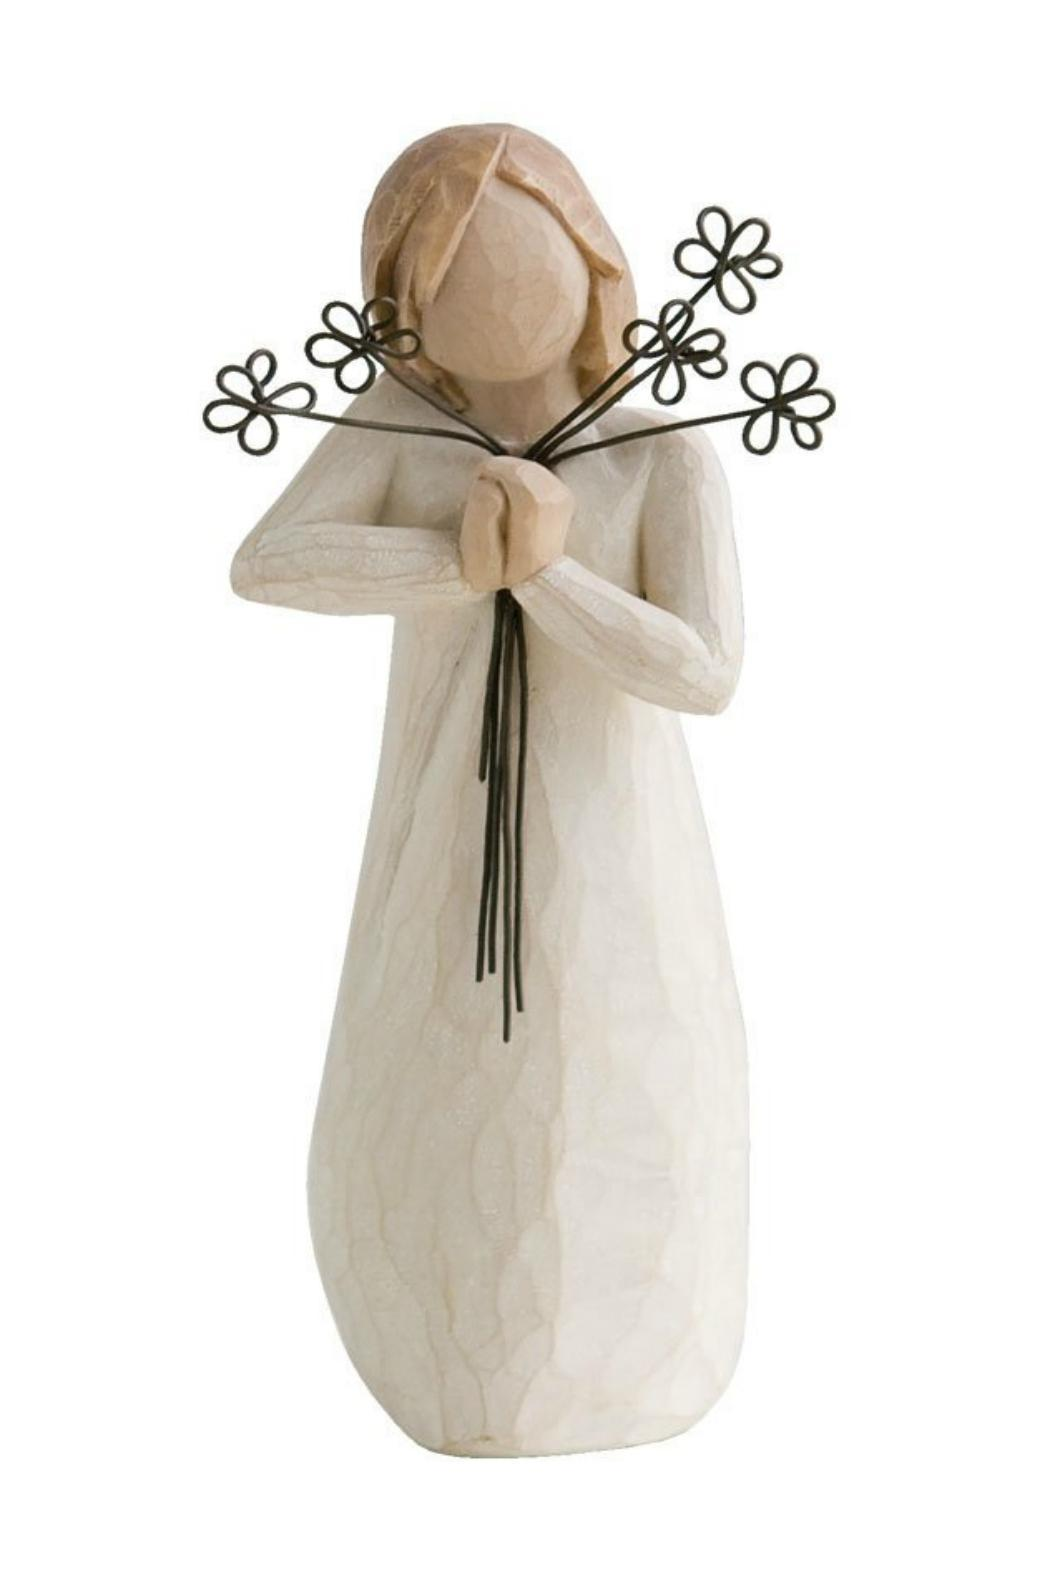 Willow Tree(r) by Susan Lordi, from DEMDACO Friendship Figurine - Main Image